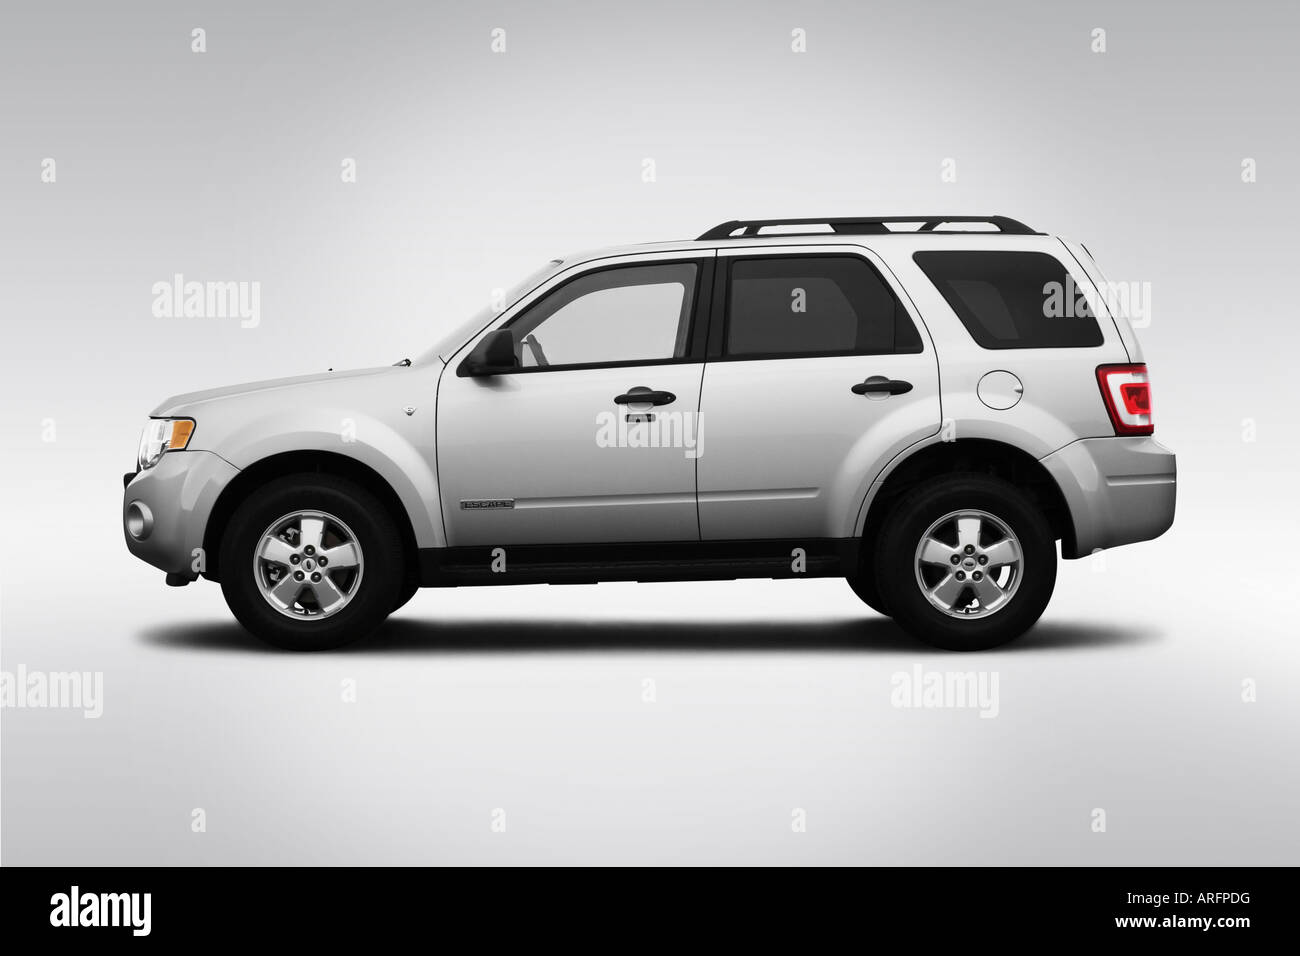 2008 ford escape xlt in silver drivers side profile